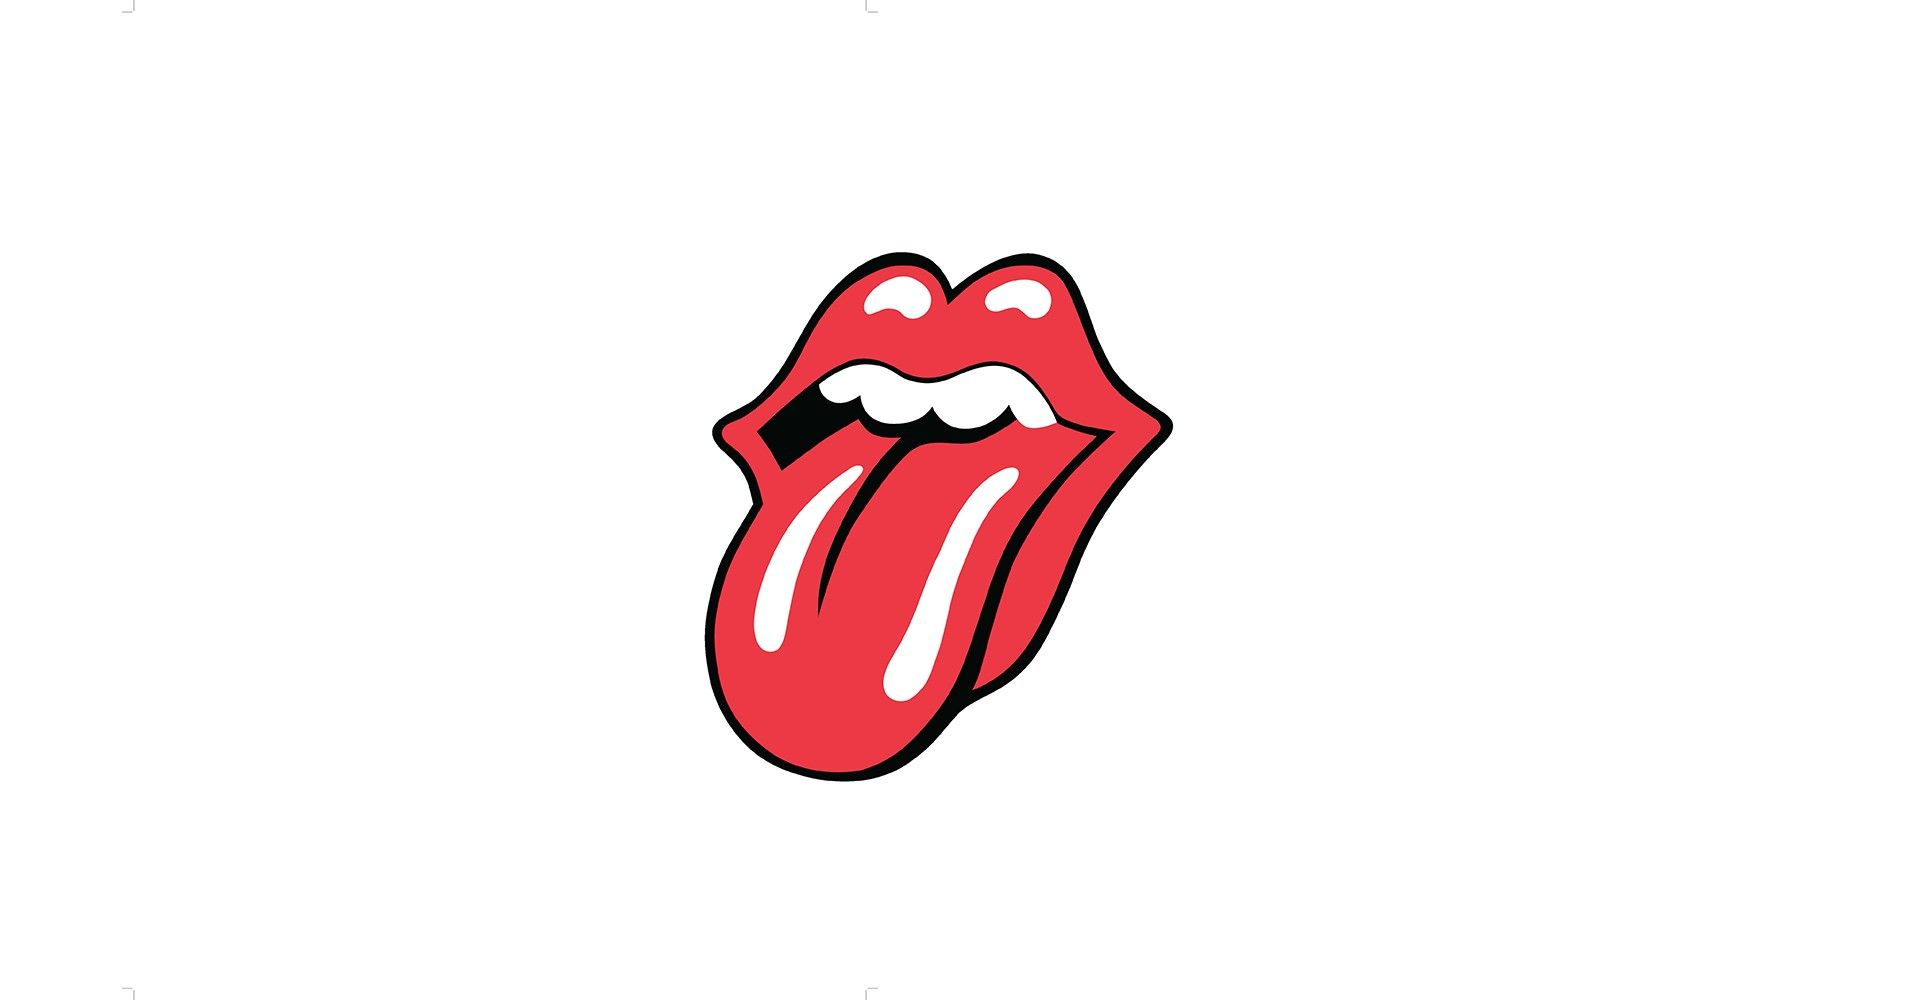 Rolling Stones Tongue Logo - The Story Behind The Rolling Stones' Logo • We Speak Music